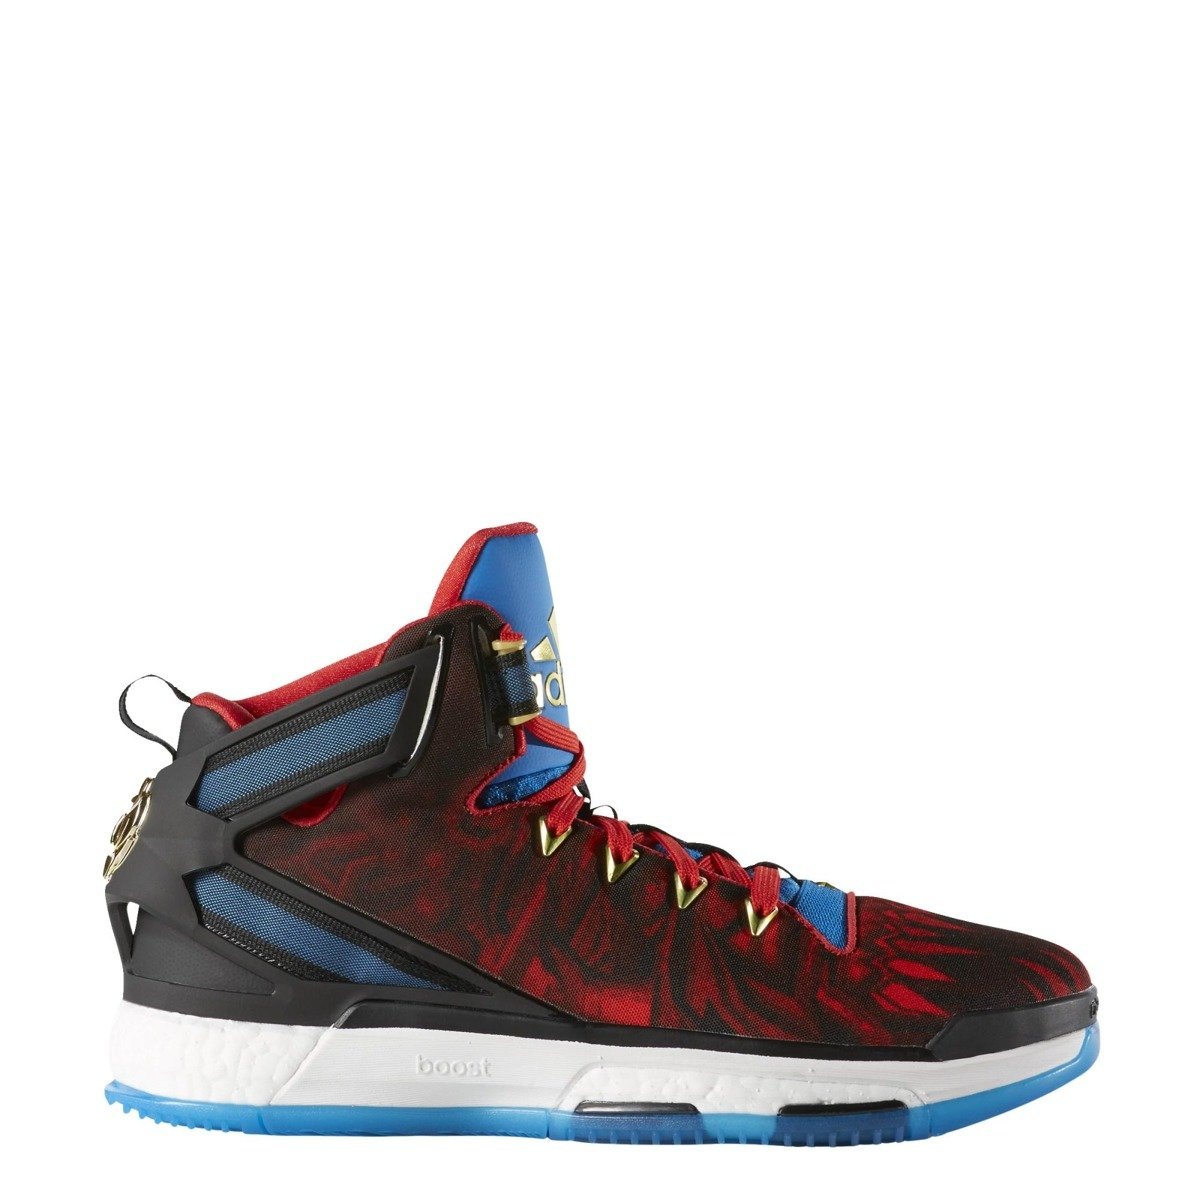 quality design 757af e53ff Adidas D Rose 6 Boost Basketball Shoes - F37127